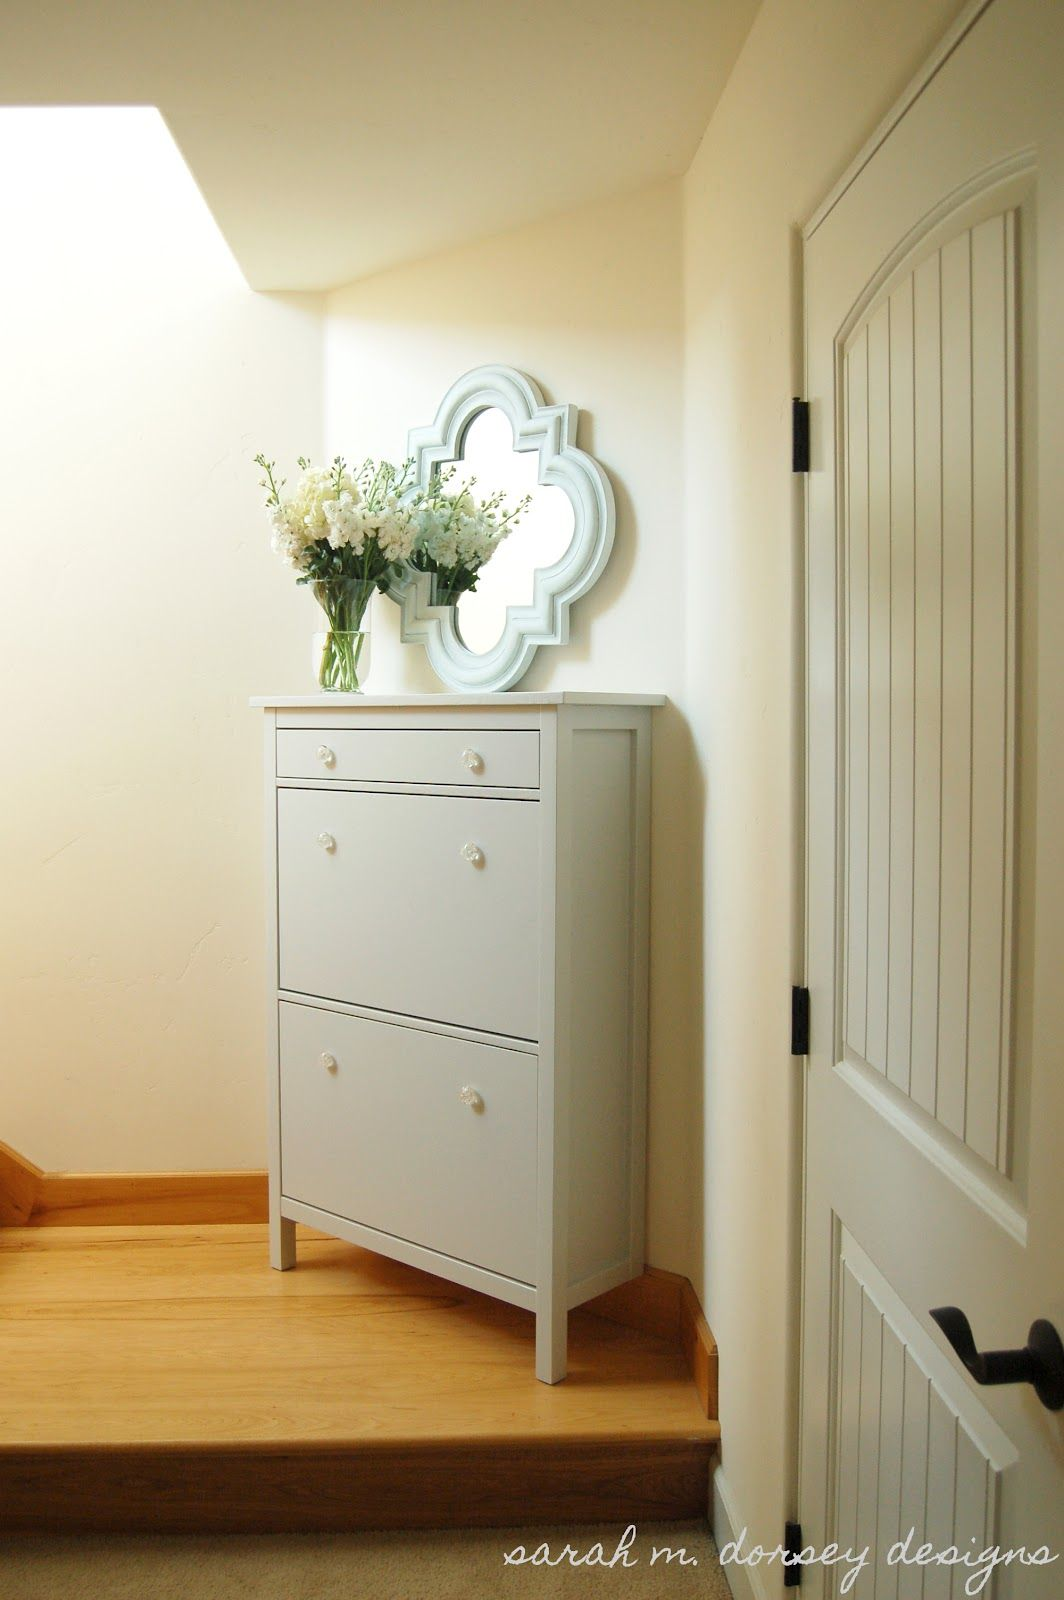 Ikea hemnes shoe cabinet renovation cool diy ideas for Ikea recibidores y pasillos